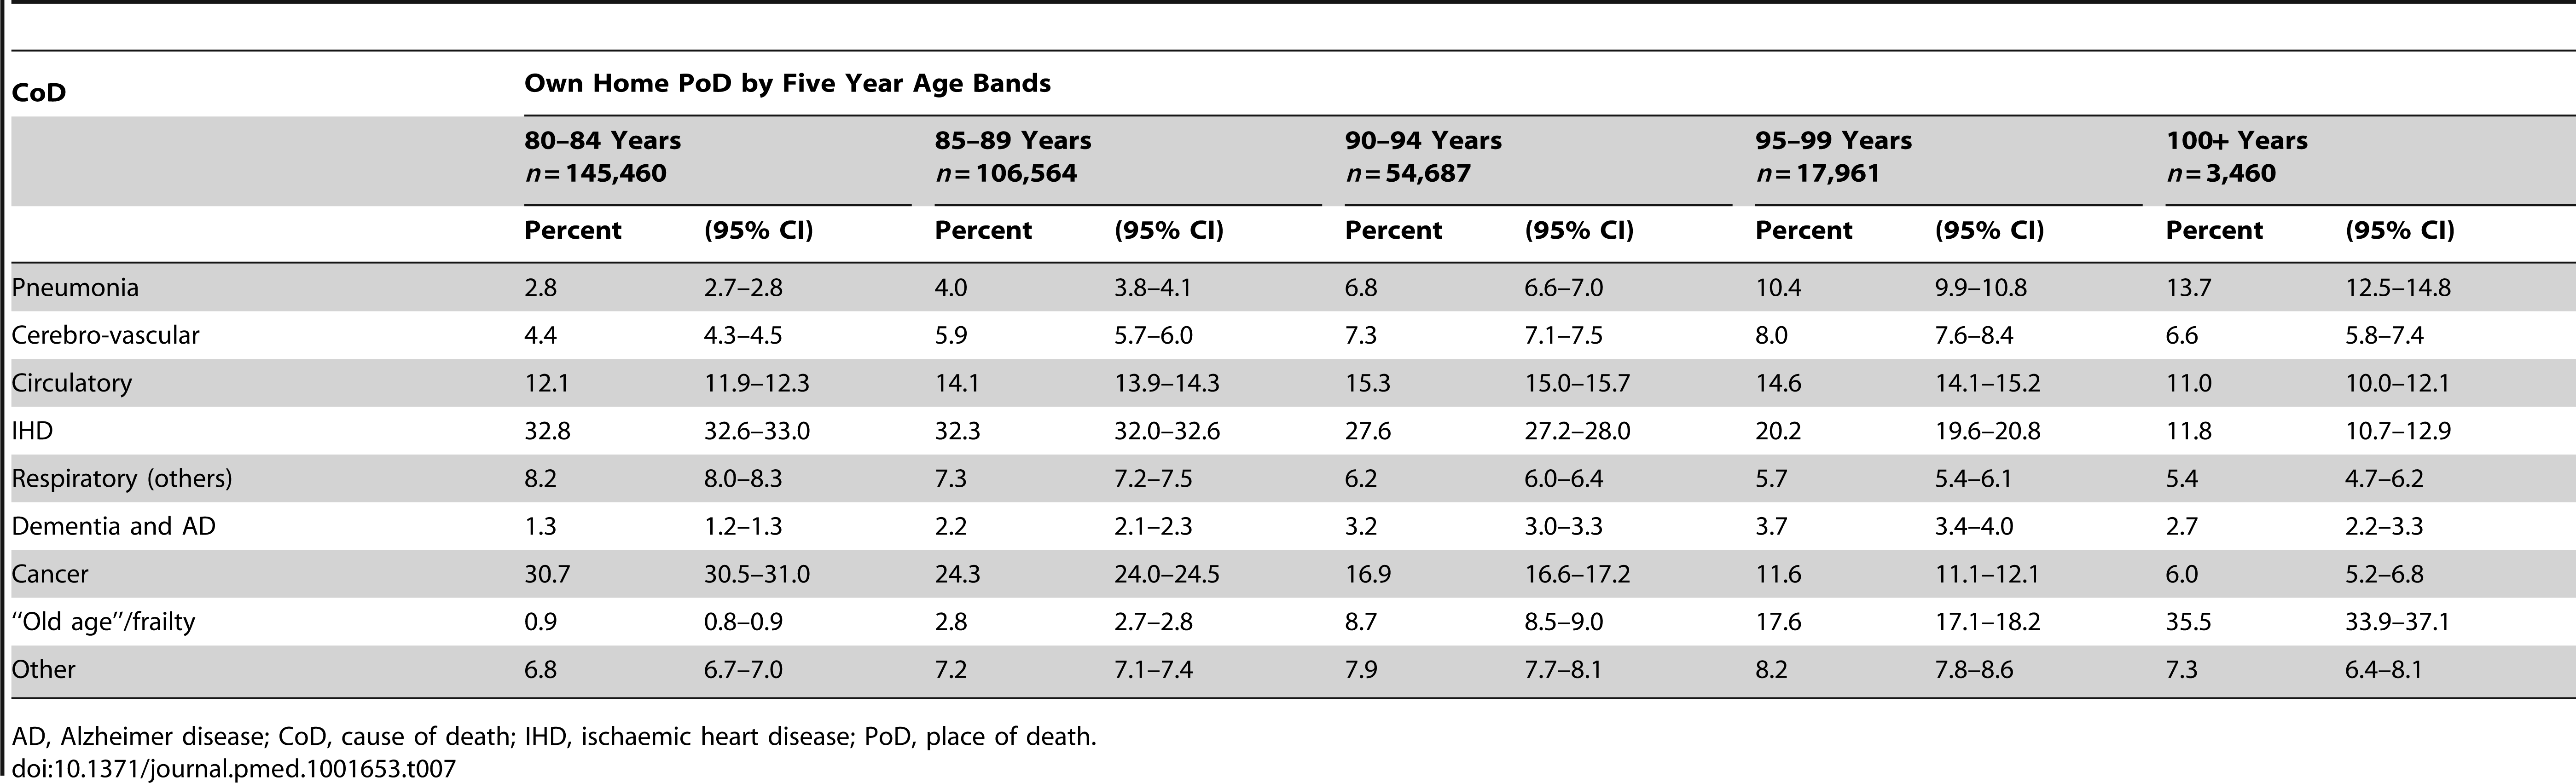 Cause of death by age bands and own home as place of death.